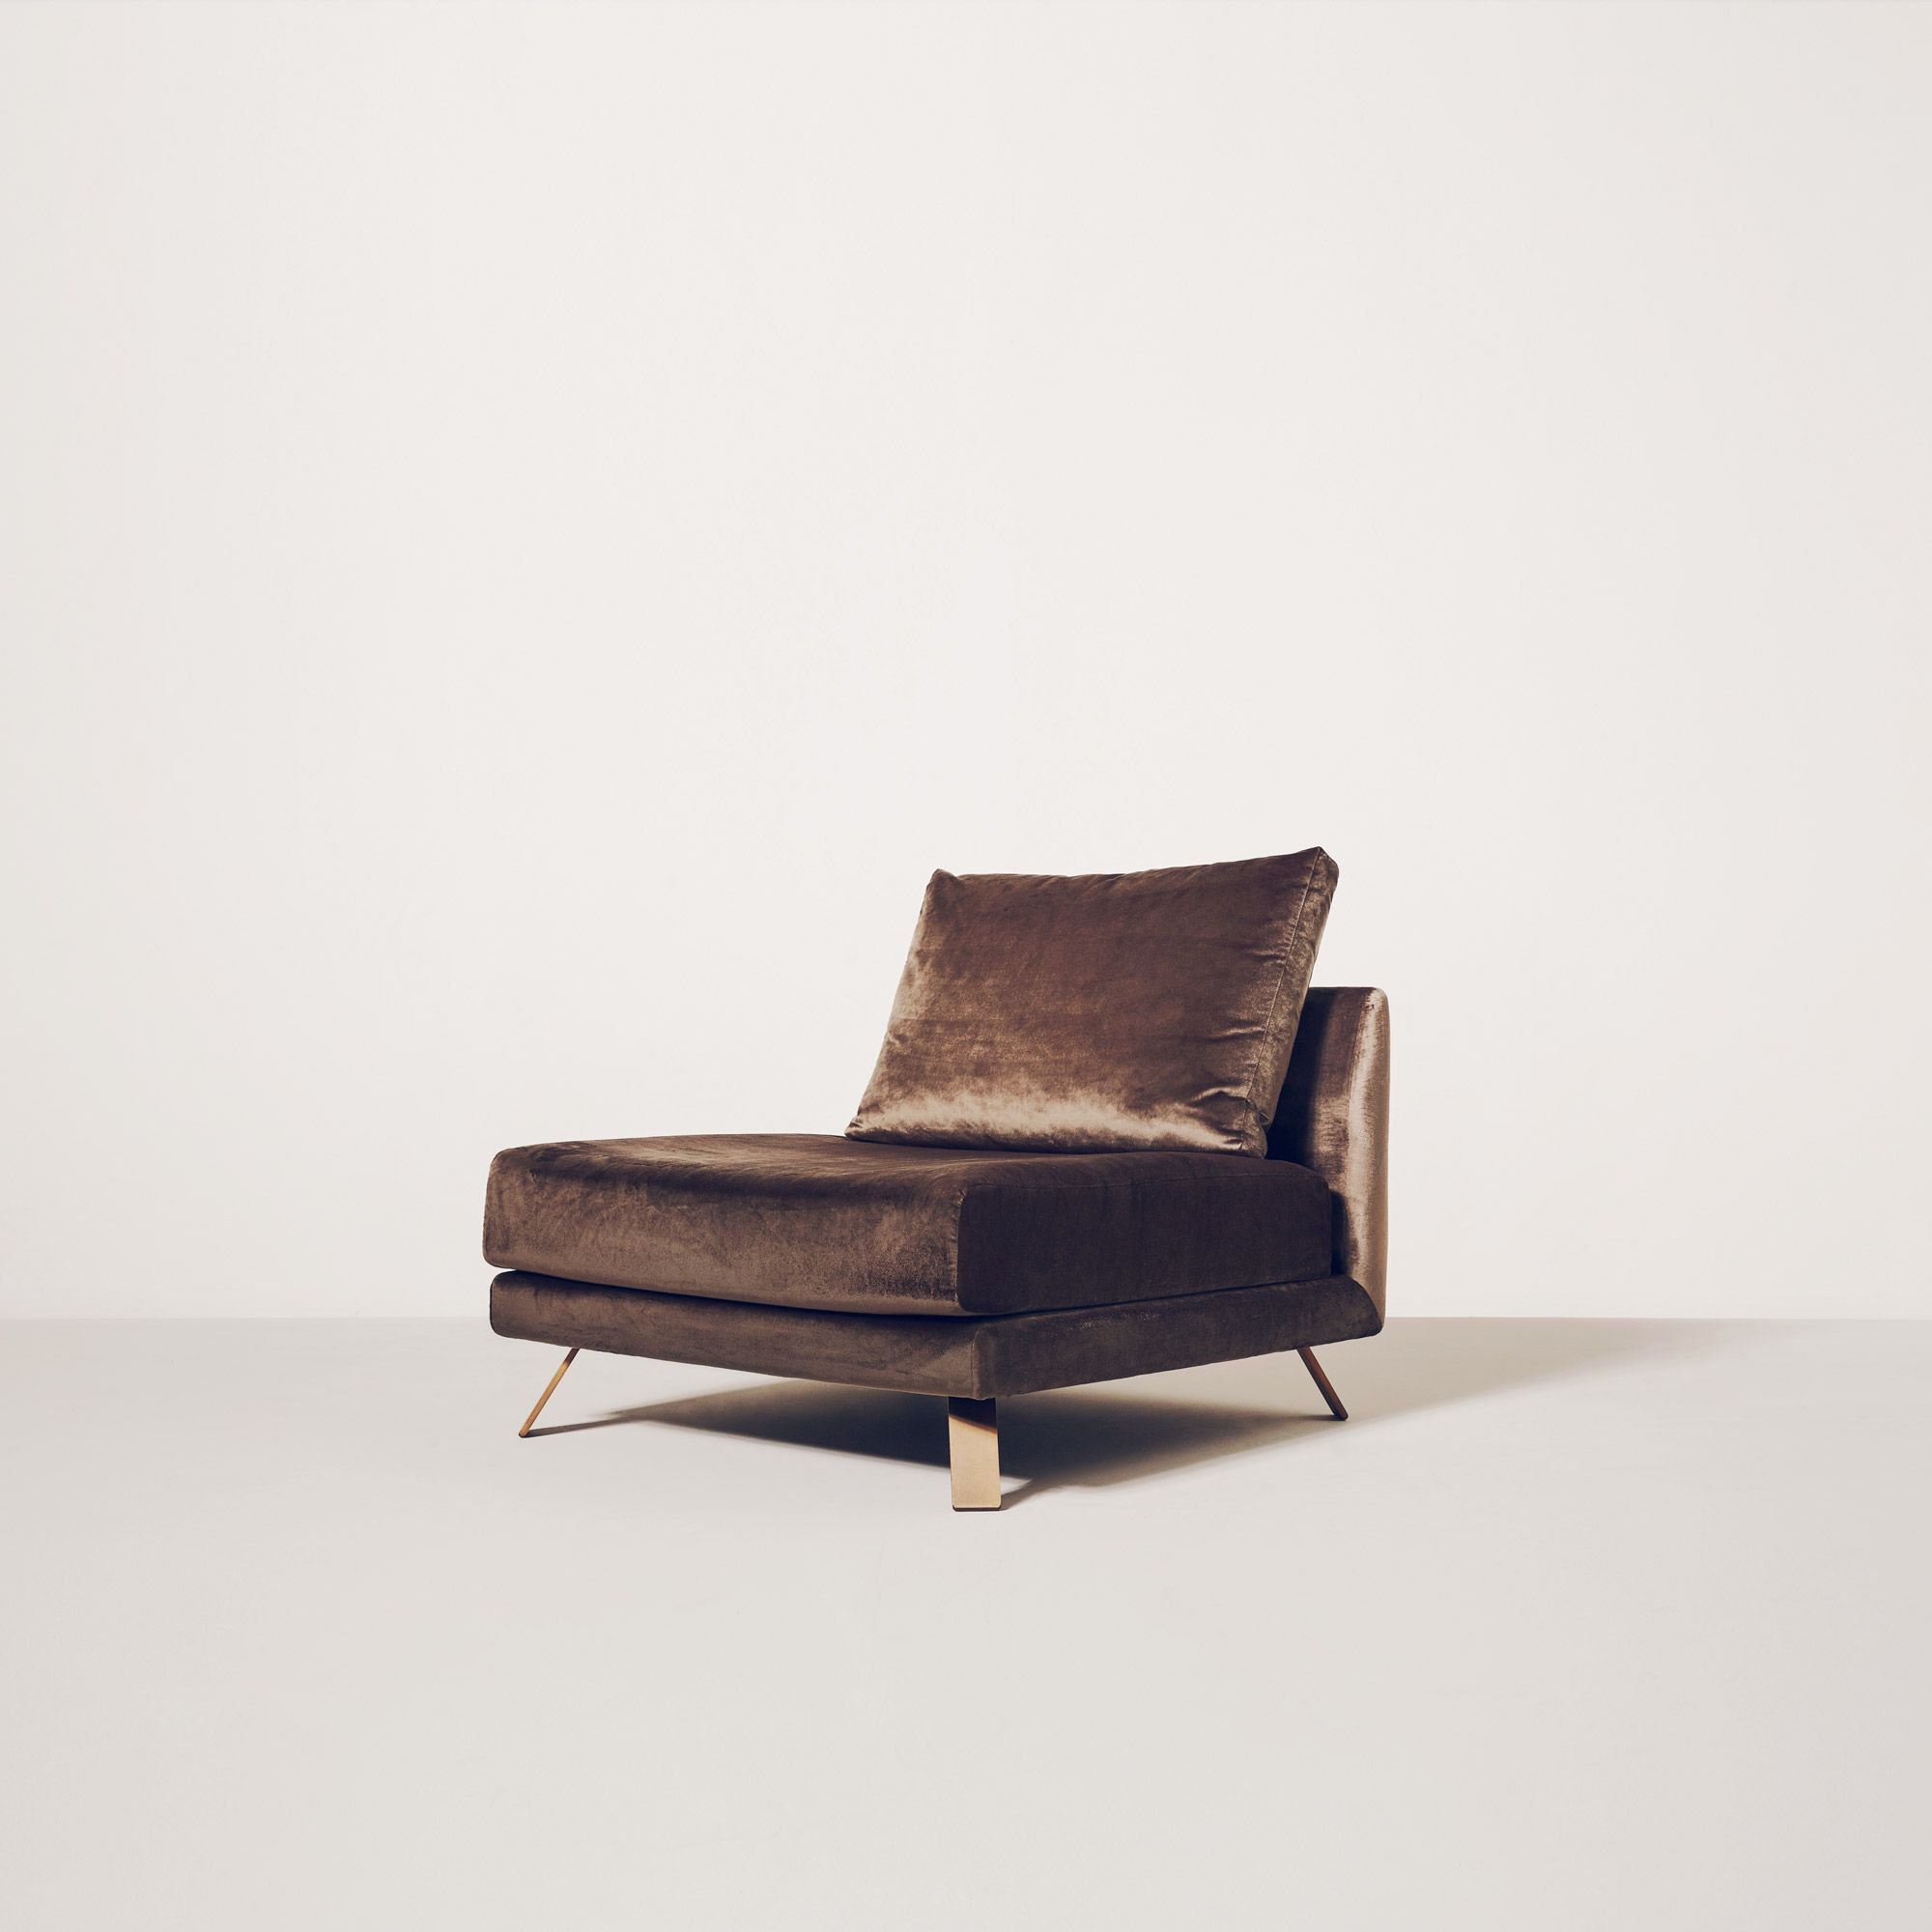 IAN Lounge Chair by Christophe Delcourt